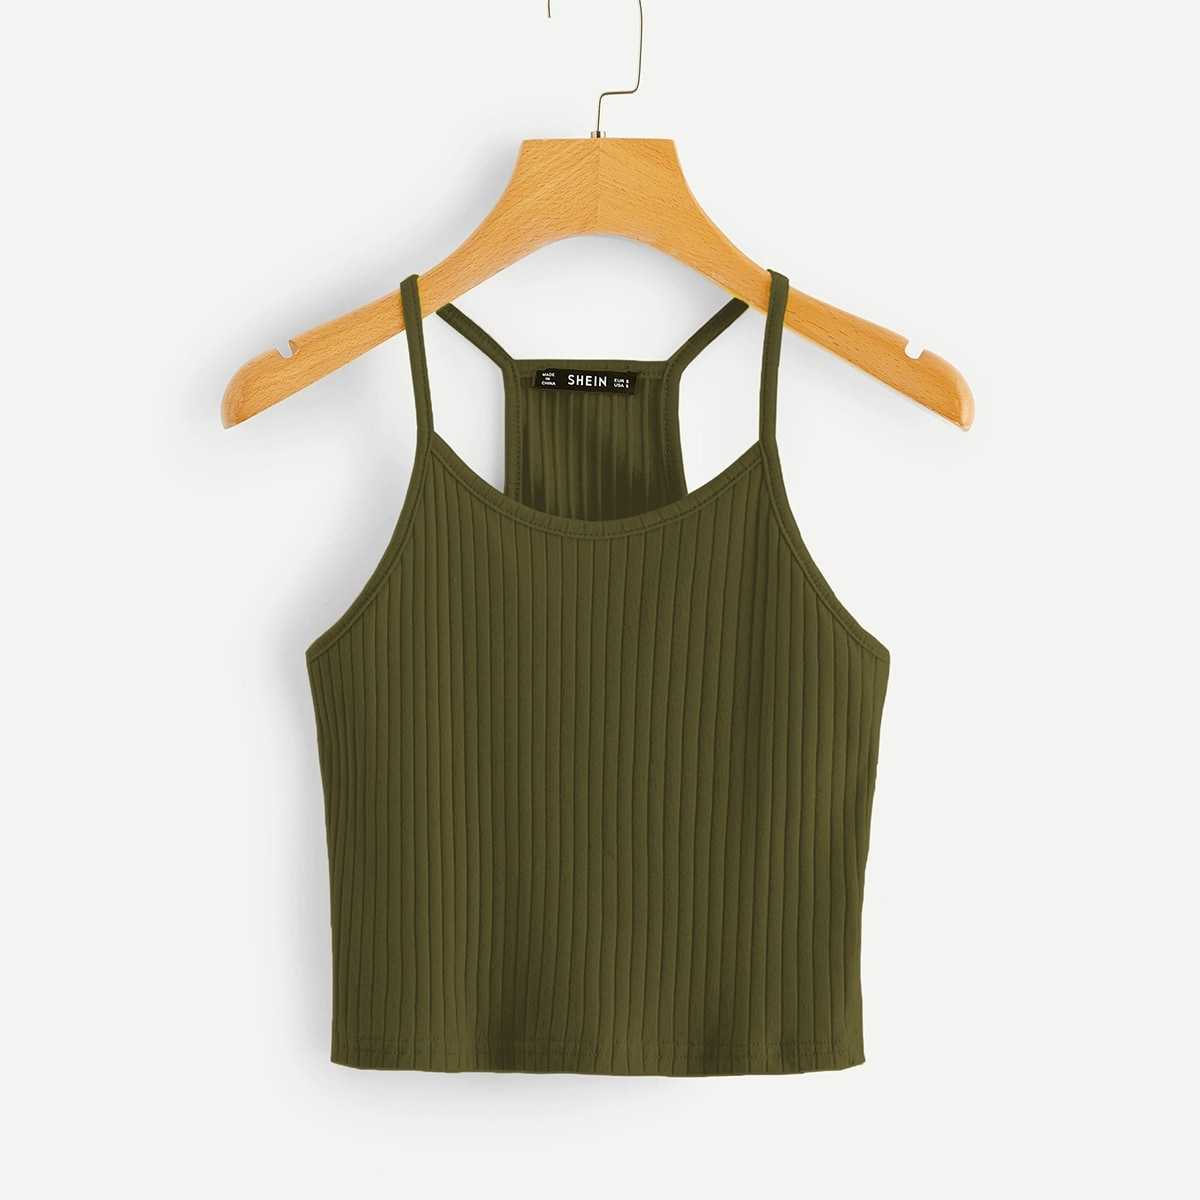 Rib-knit Cami Top in Army Green by ROMWE on GOOFASH